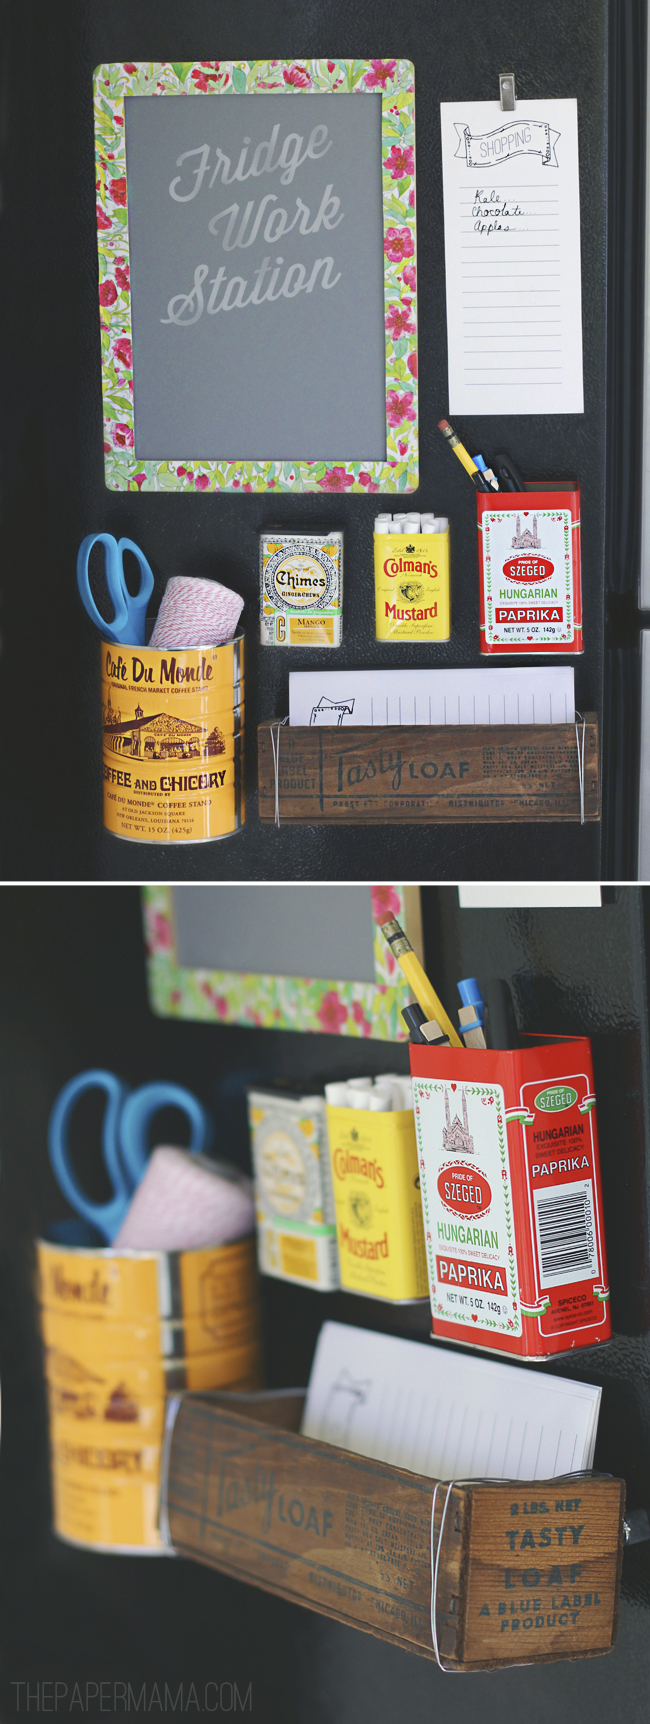 work station, old can, tins, coffee can, repurposed